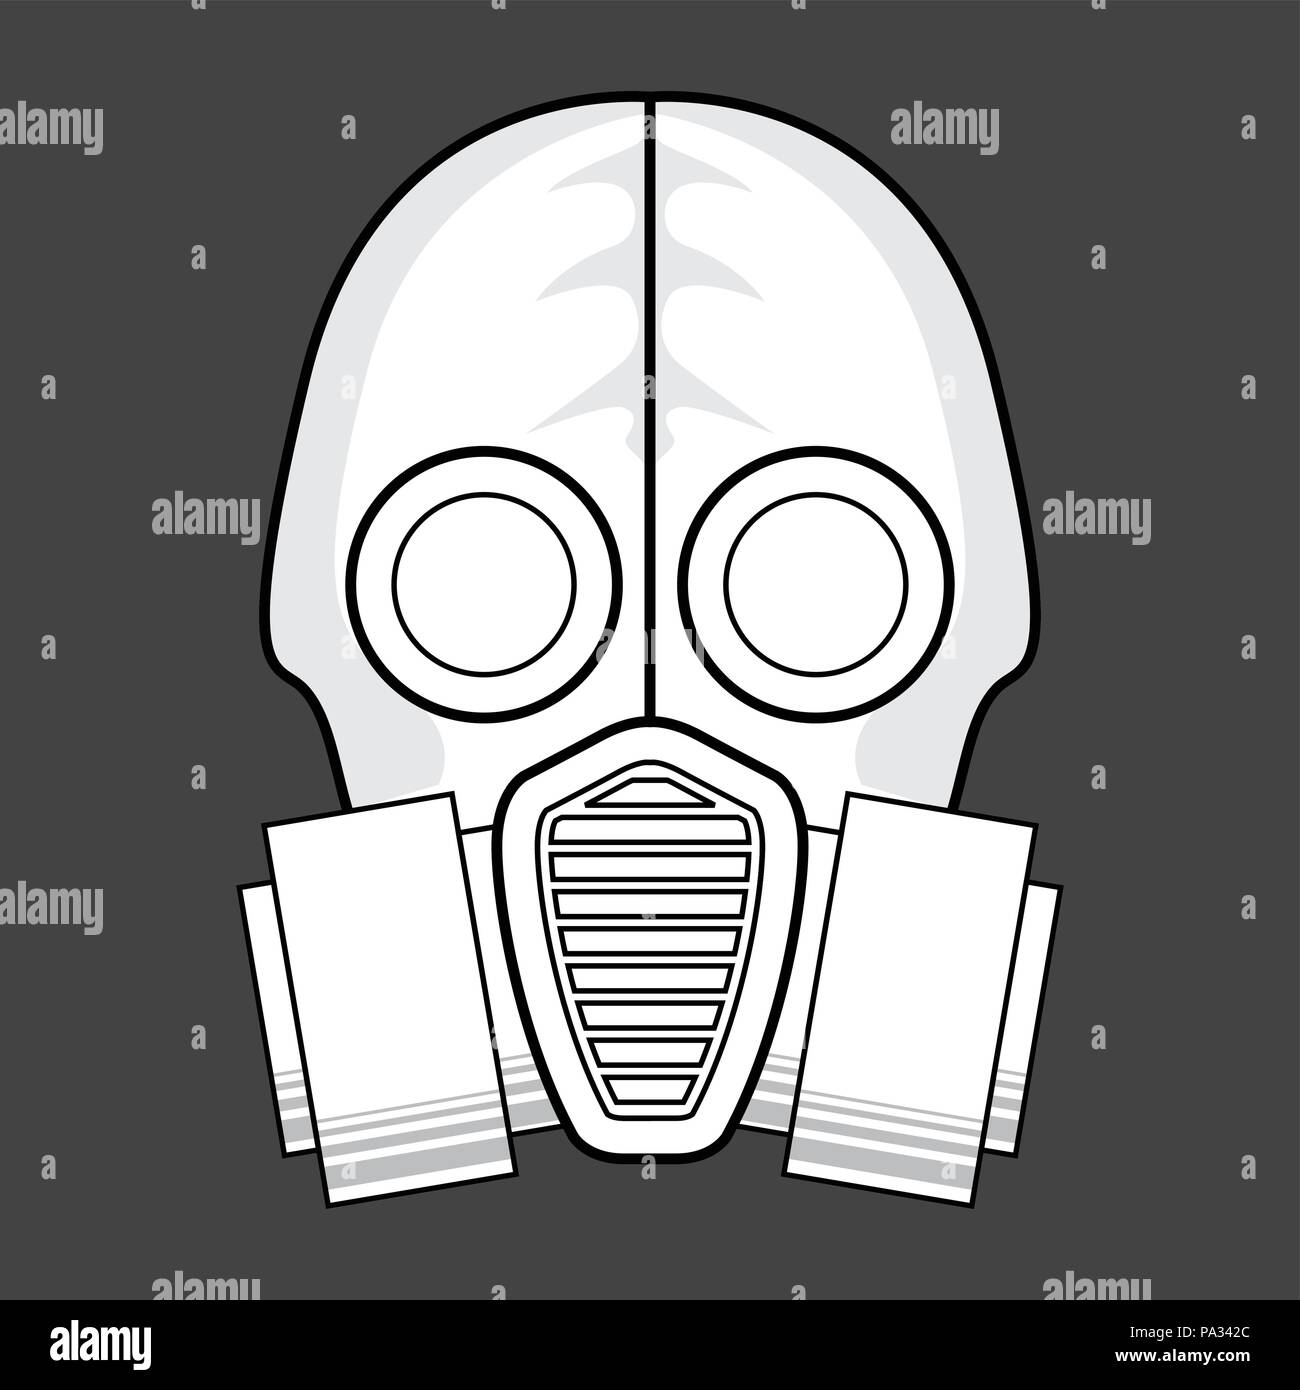 Protective gas mask  icon - respirator front view - Stock Image